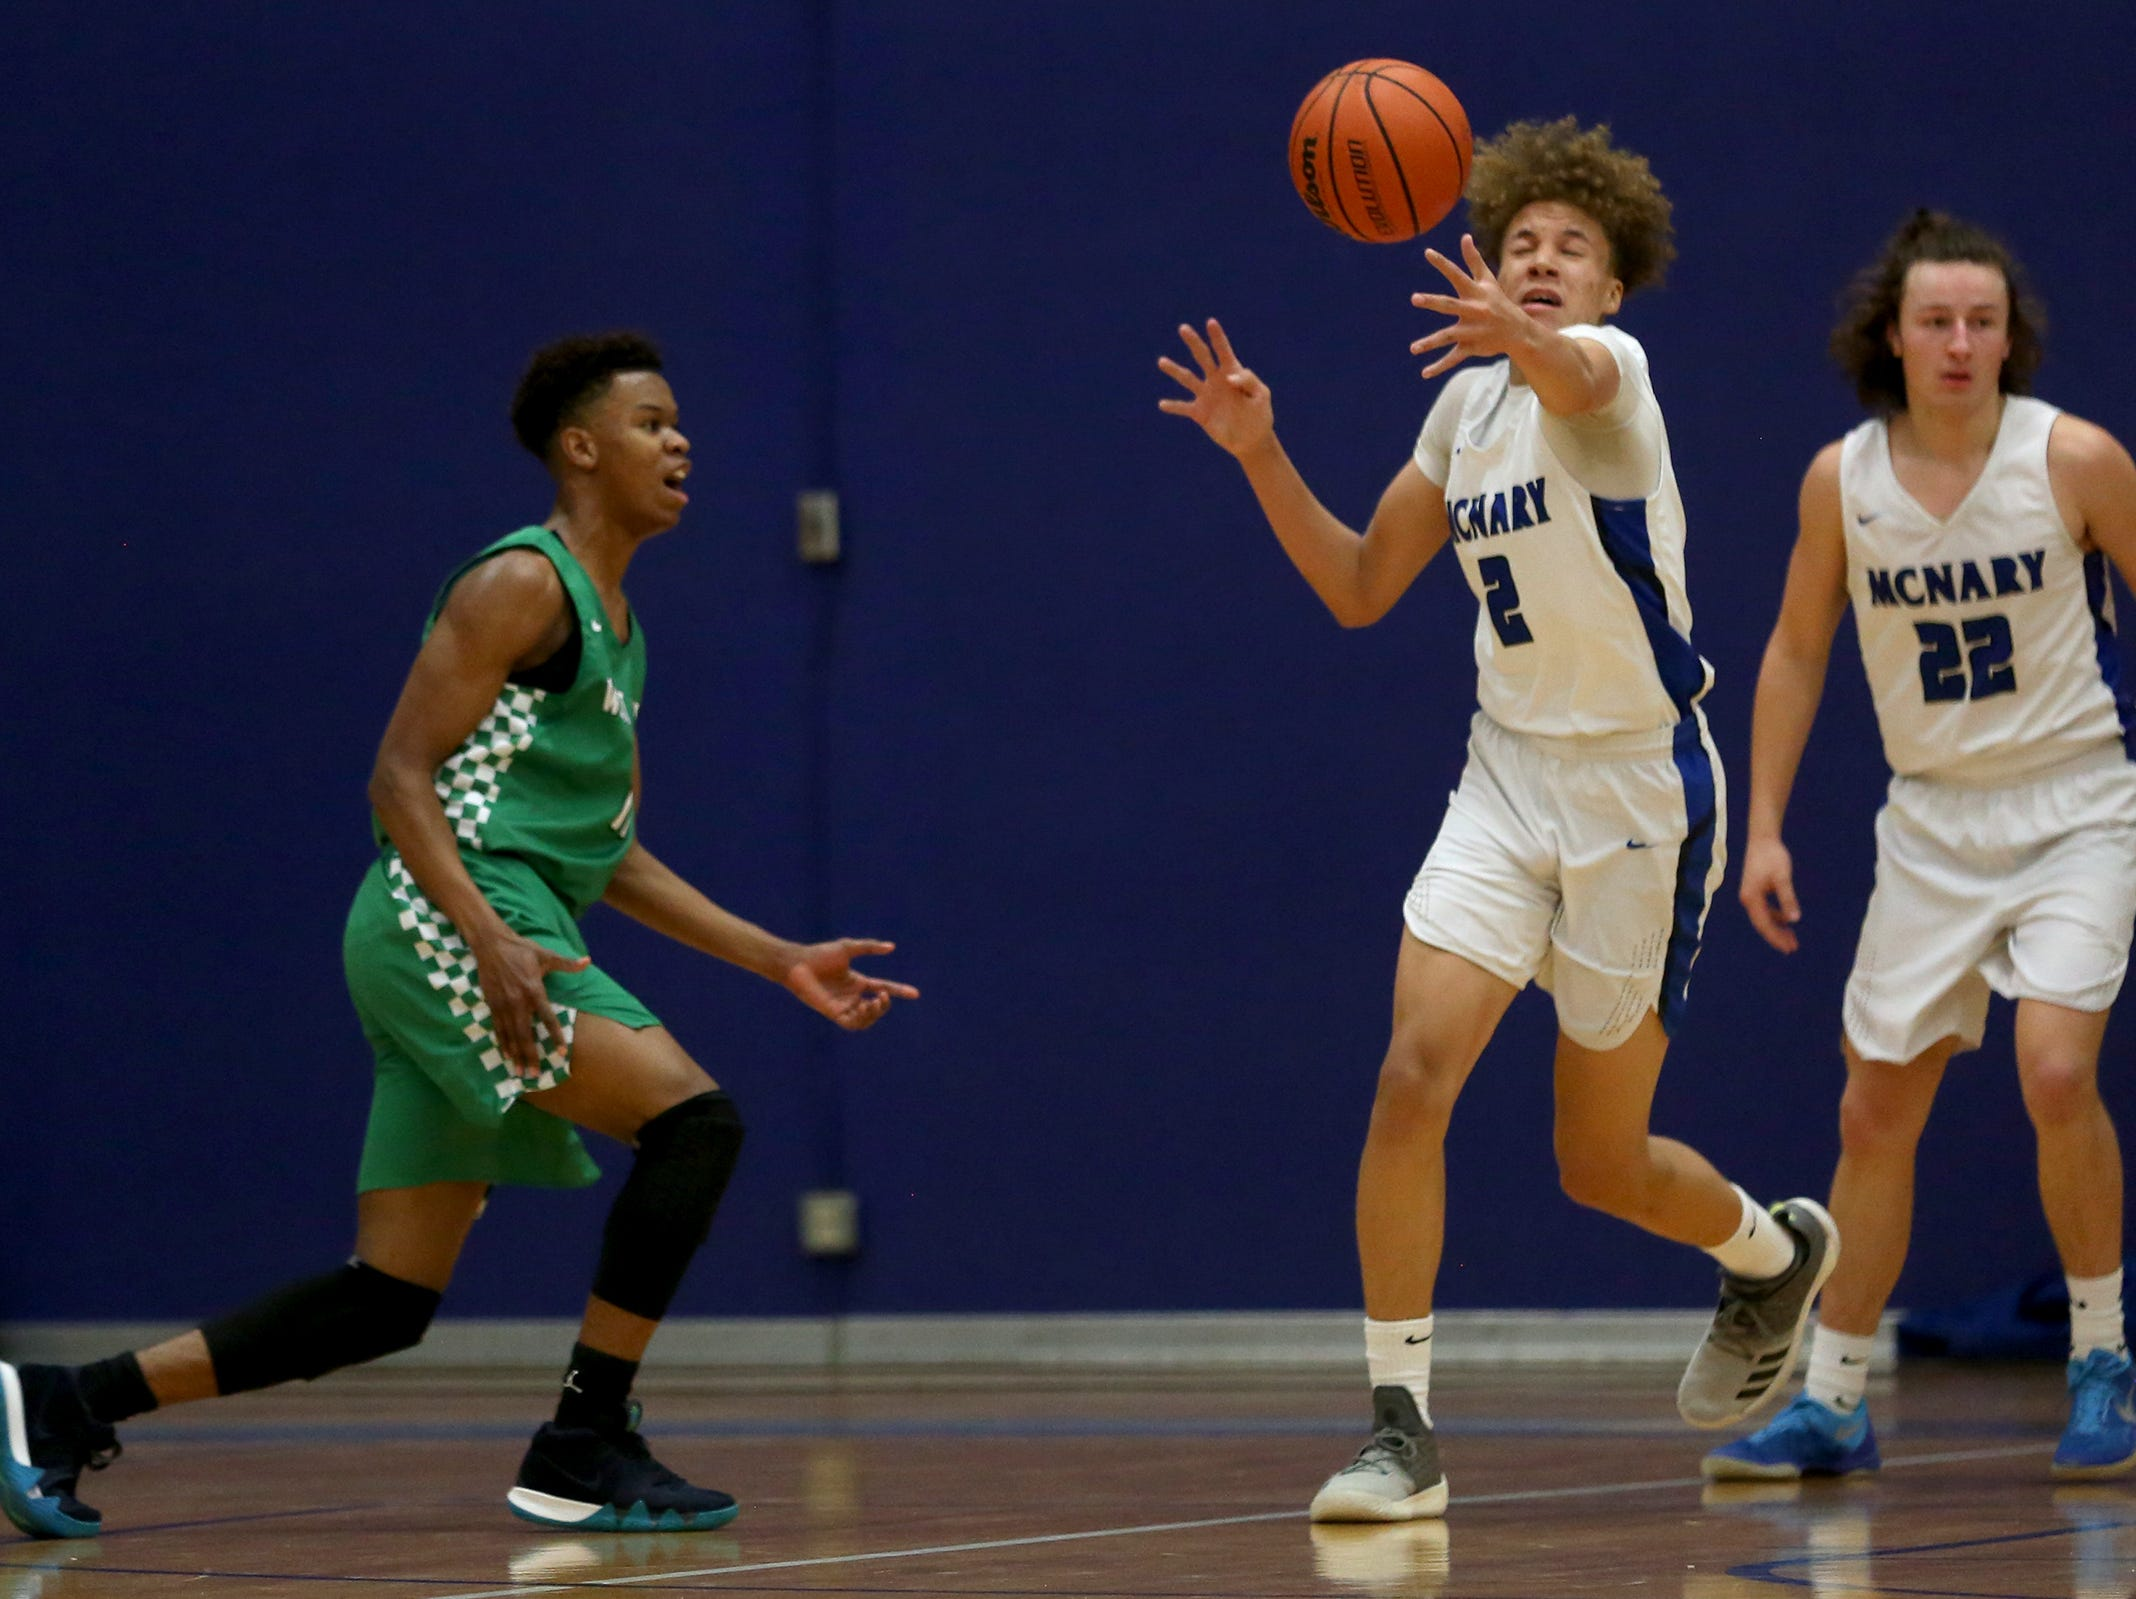 McNary's Nate Meithof (2) attempts to gain control of the ball during the McNary boys basketball vs. West Salem game at McNary High School in Keizer on Wednesday, Feb. 6, 2019.